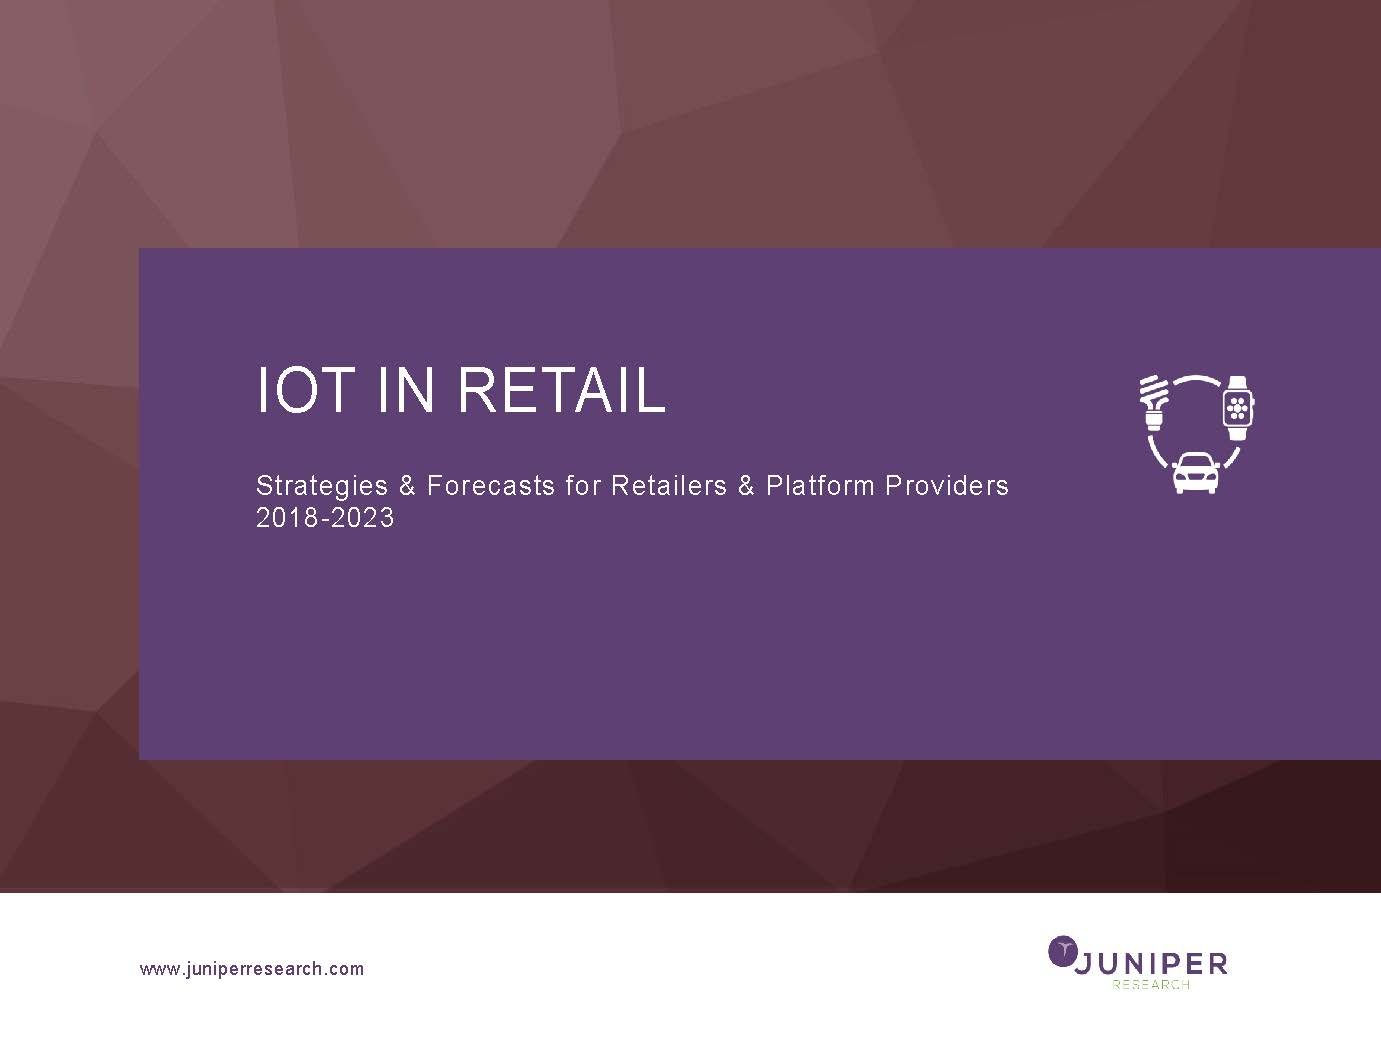 IoT in Retail: Deep Dive Strategy & Competition 2018-2023